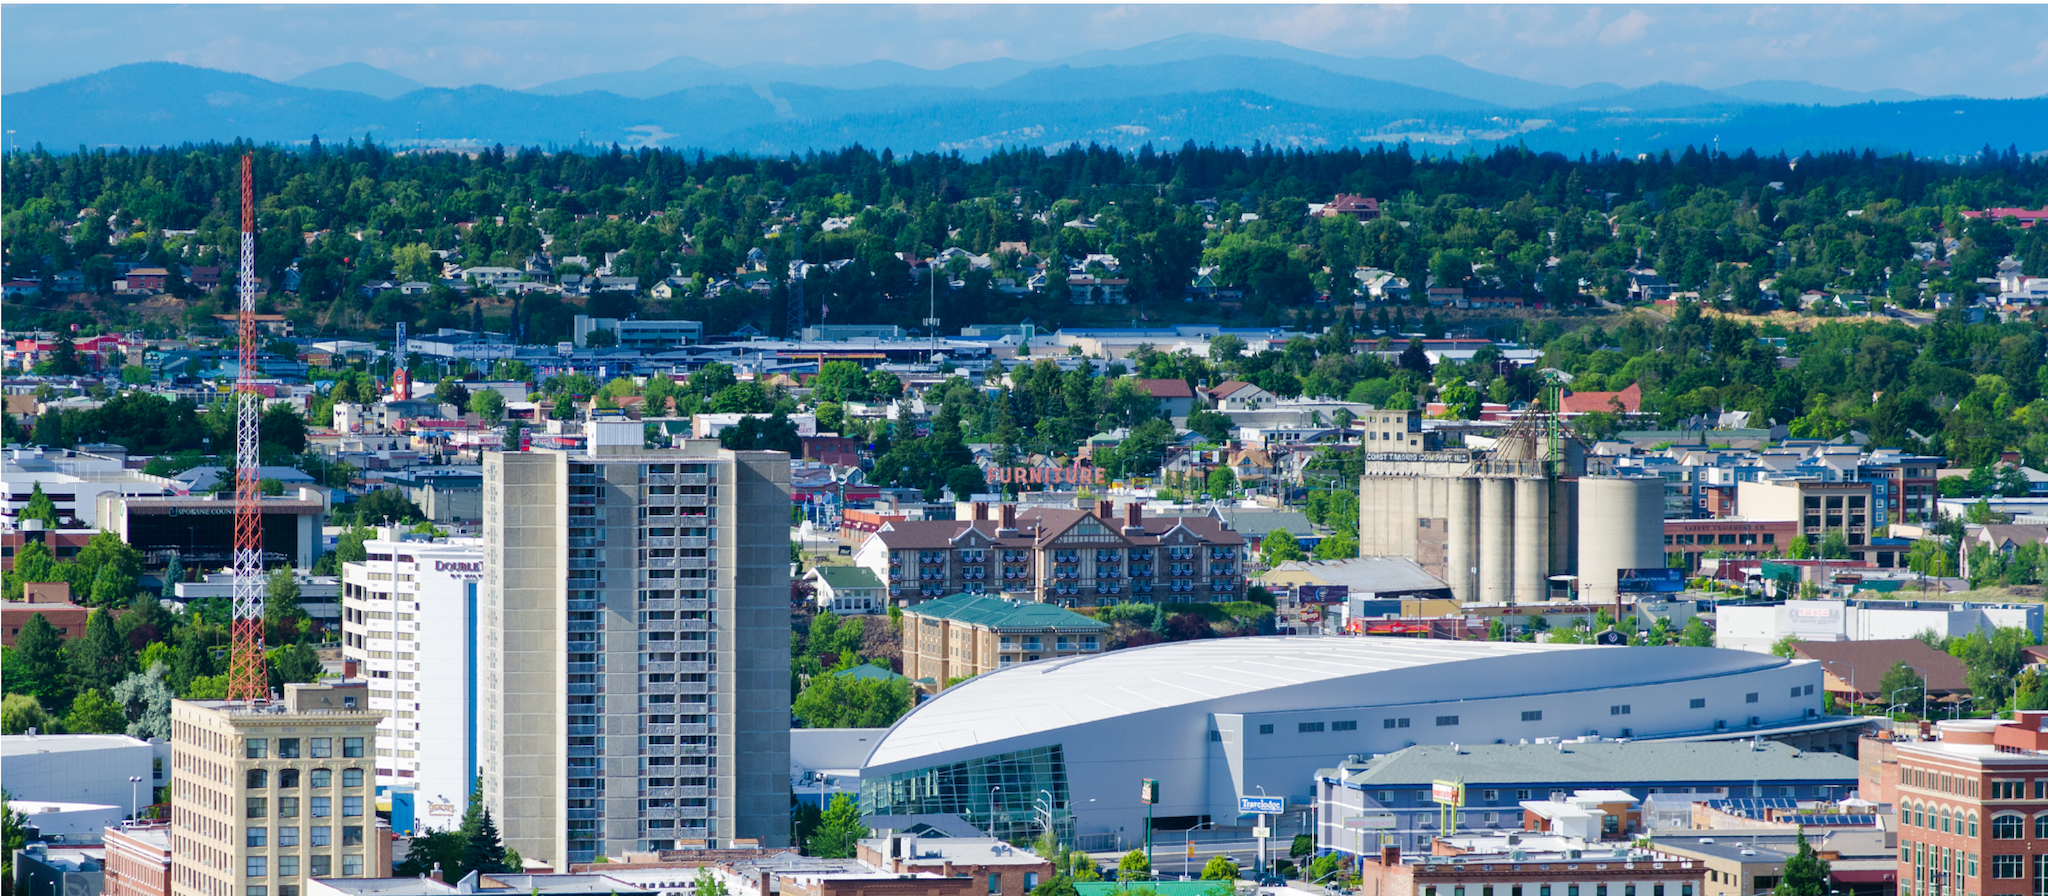 Image of downtown Spokane, including the Spokane Convention Center